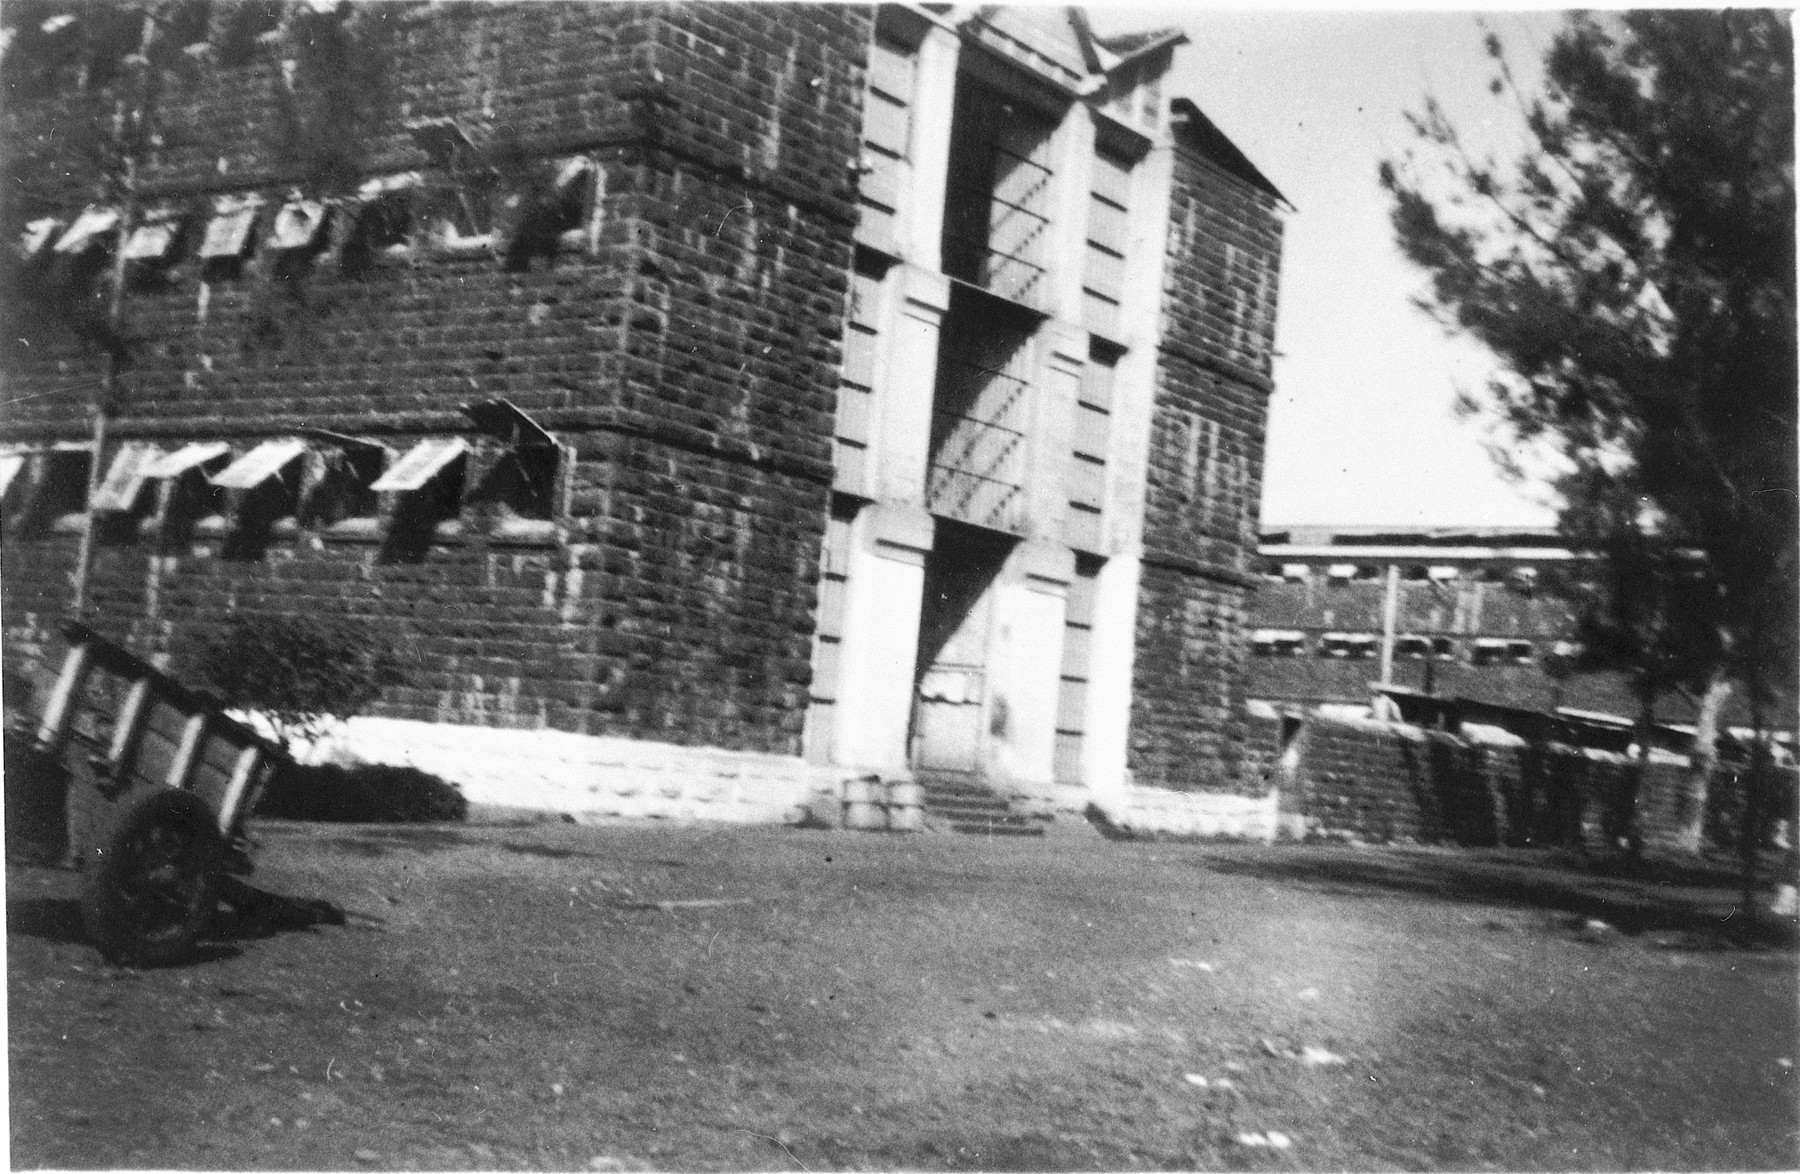 View of the prison in Mauritius that housed the Jewish internees.